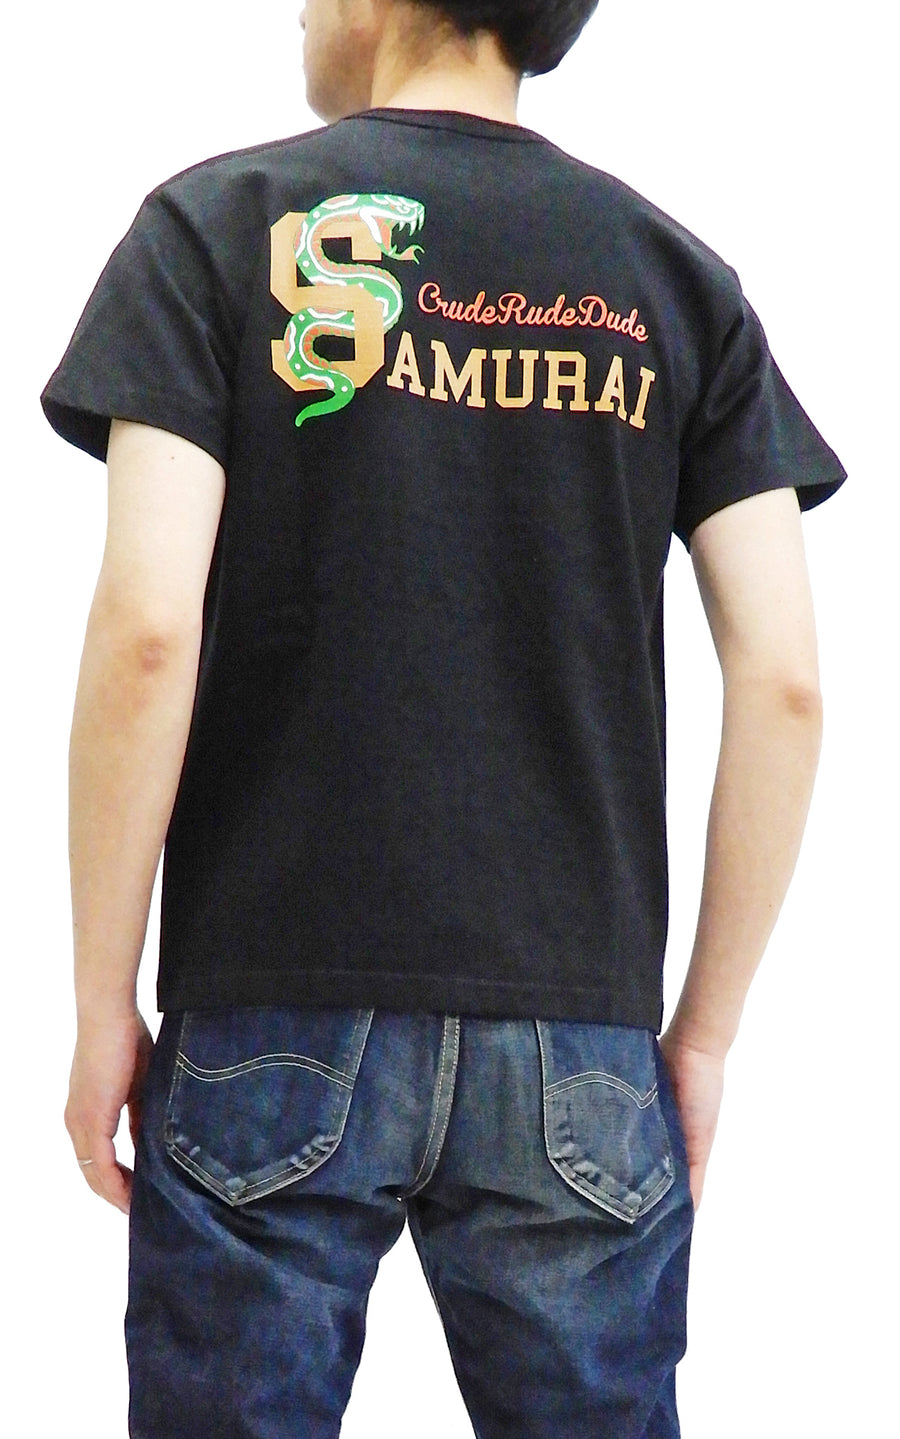 Samurai Jeans Men's T-shirt Short Sleeve Japanese Graphic Art Tee SCT19-102 Black